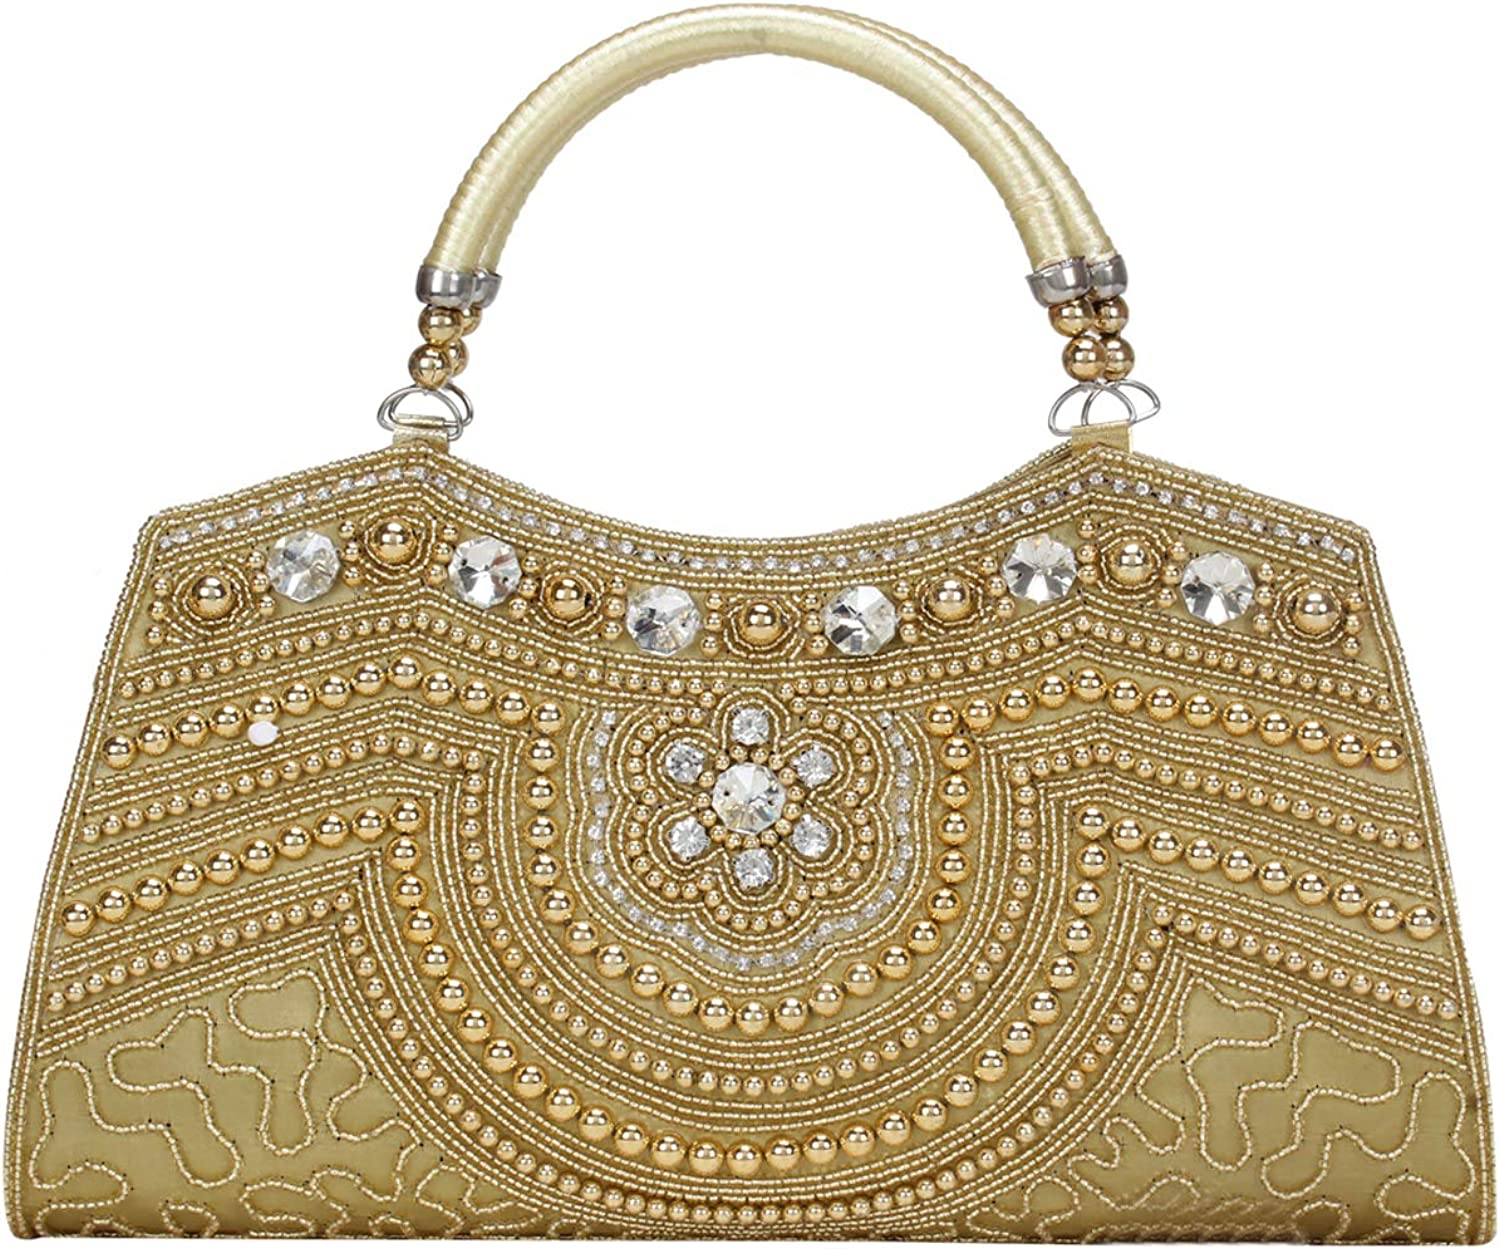 Baeutifully Designed Indian Bridal Clutch Wedding Party Clutches for Women & Girlsgolden color